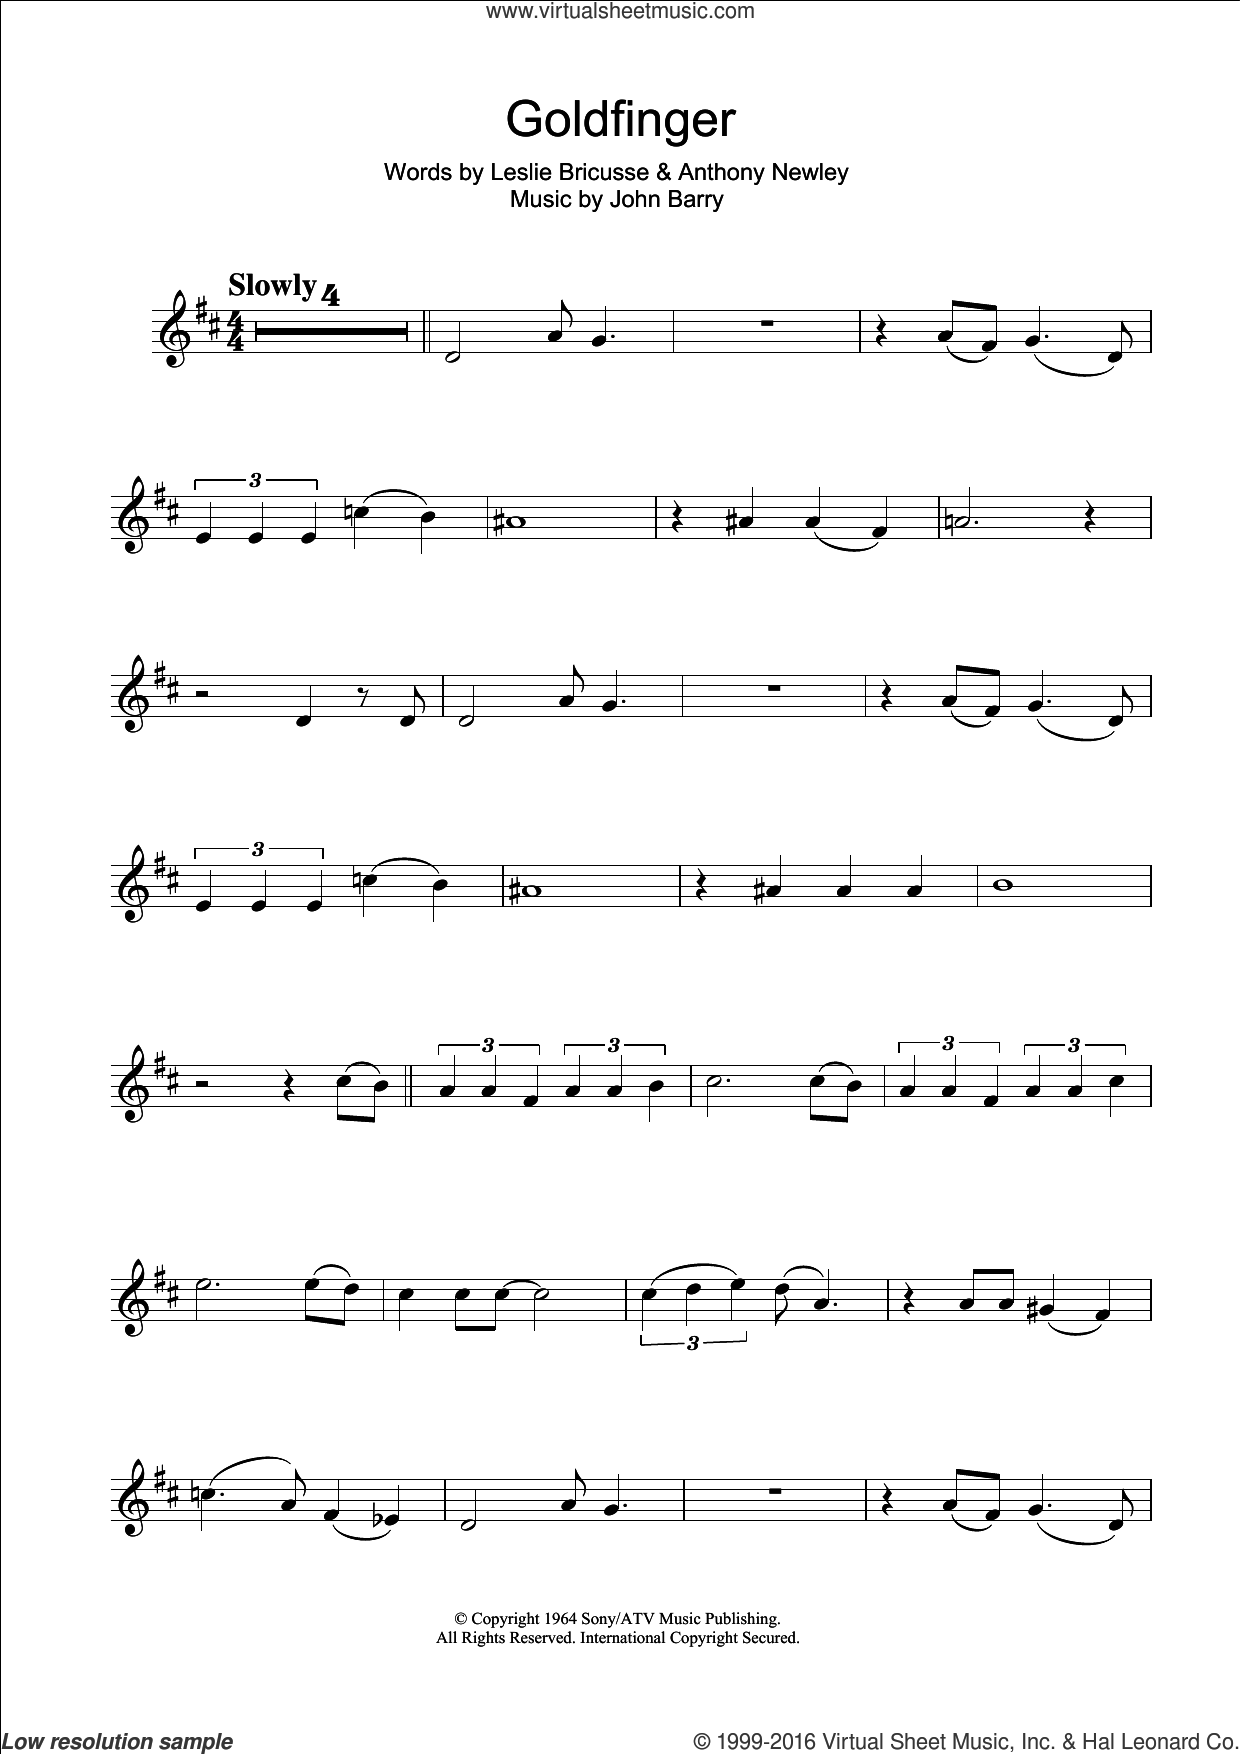 Goldfinger sheet music for clarinet solo by Shirley Bassey, Anthony Newley, John Barry and Leslie Bricusse, intermediate skill level